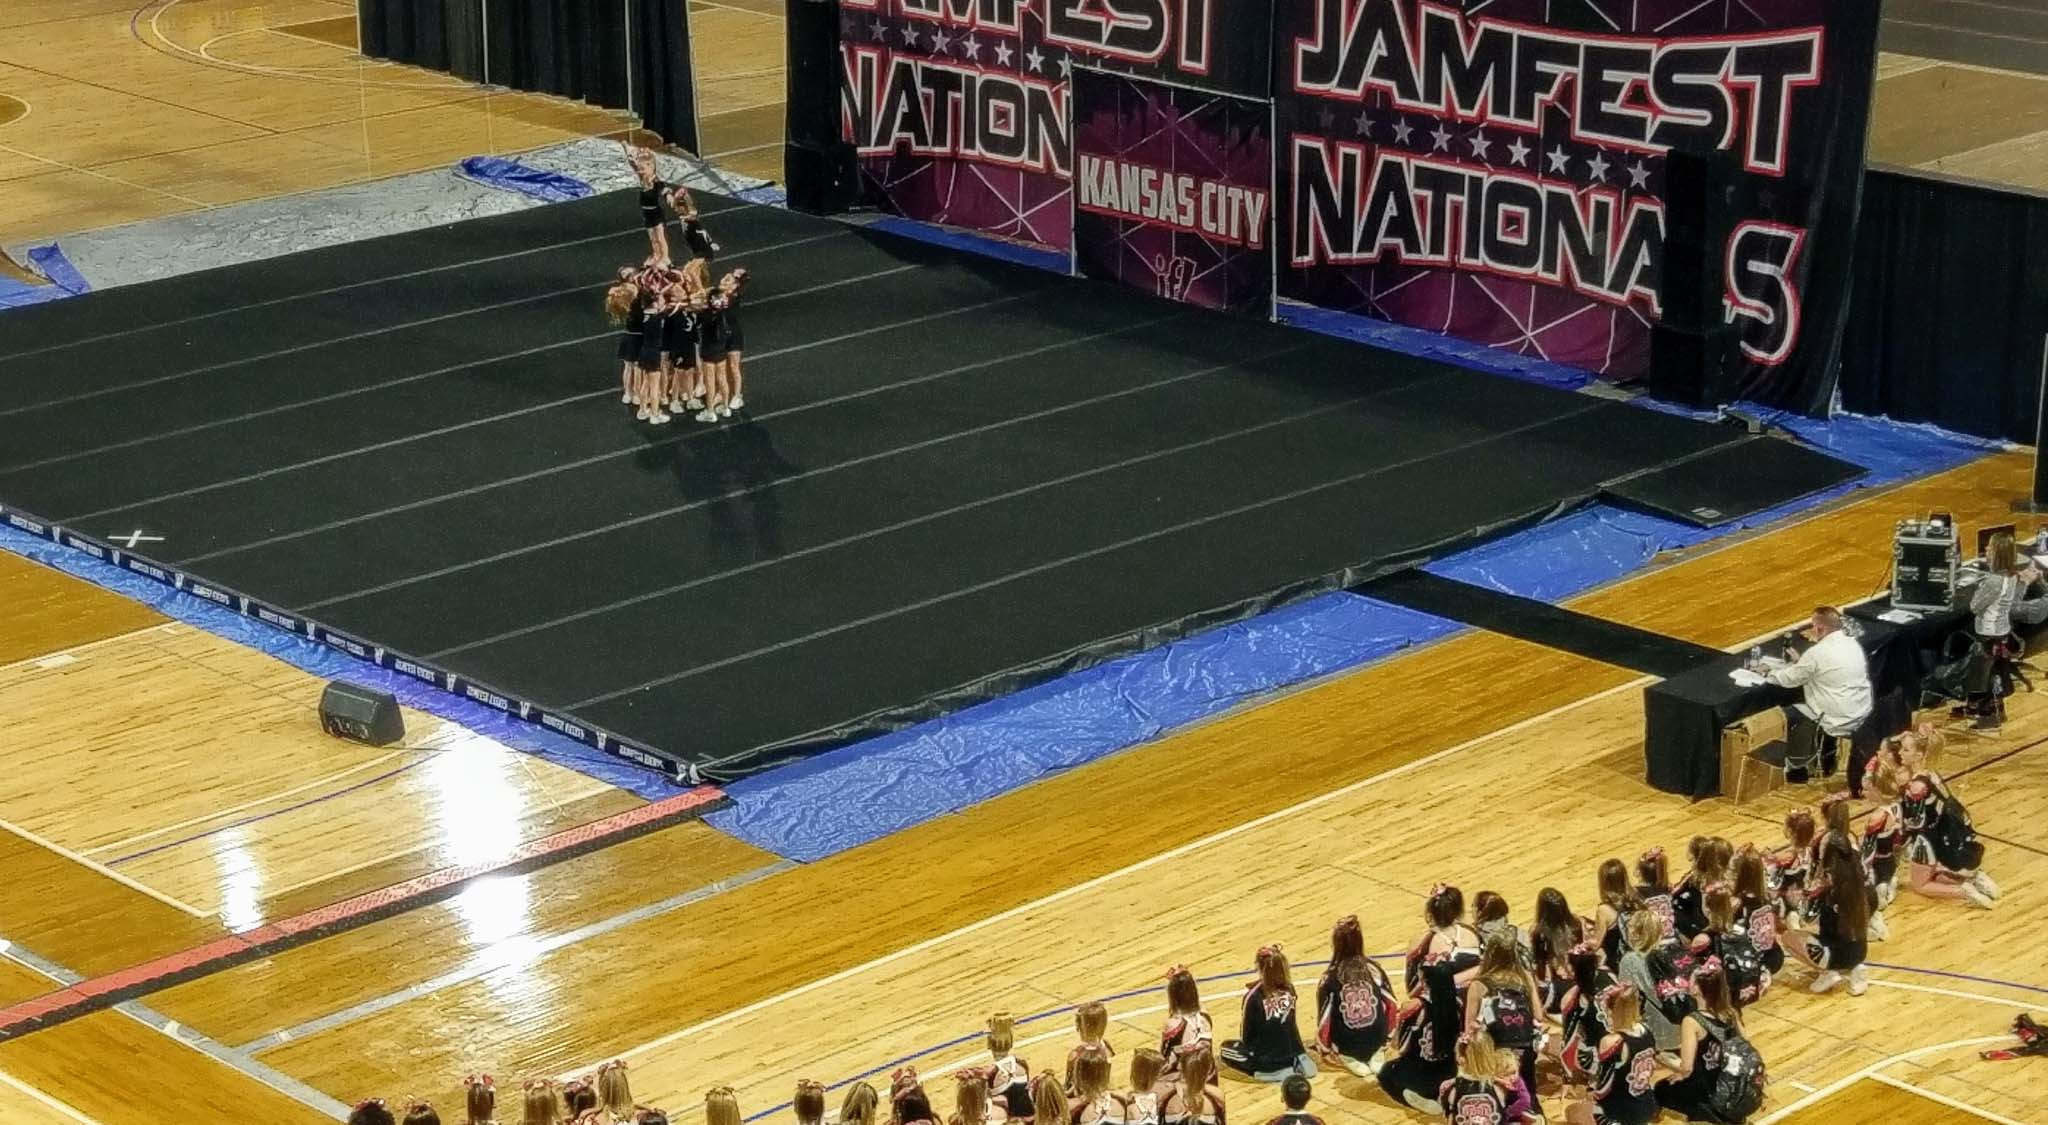 Jamfest Nationals